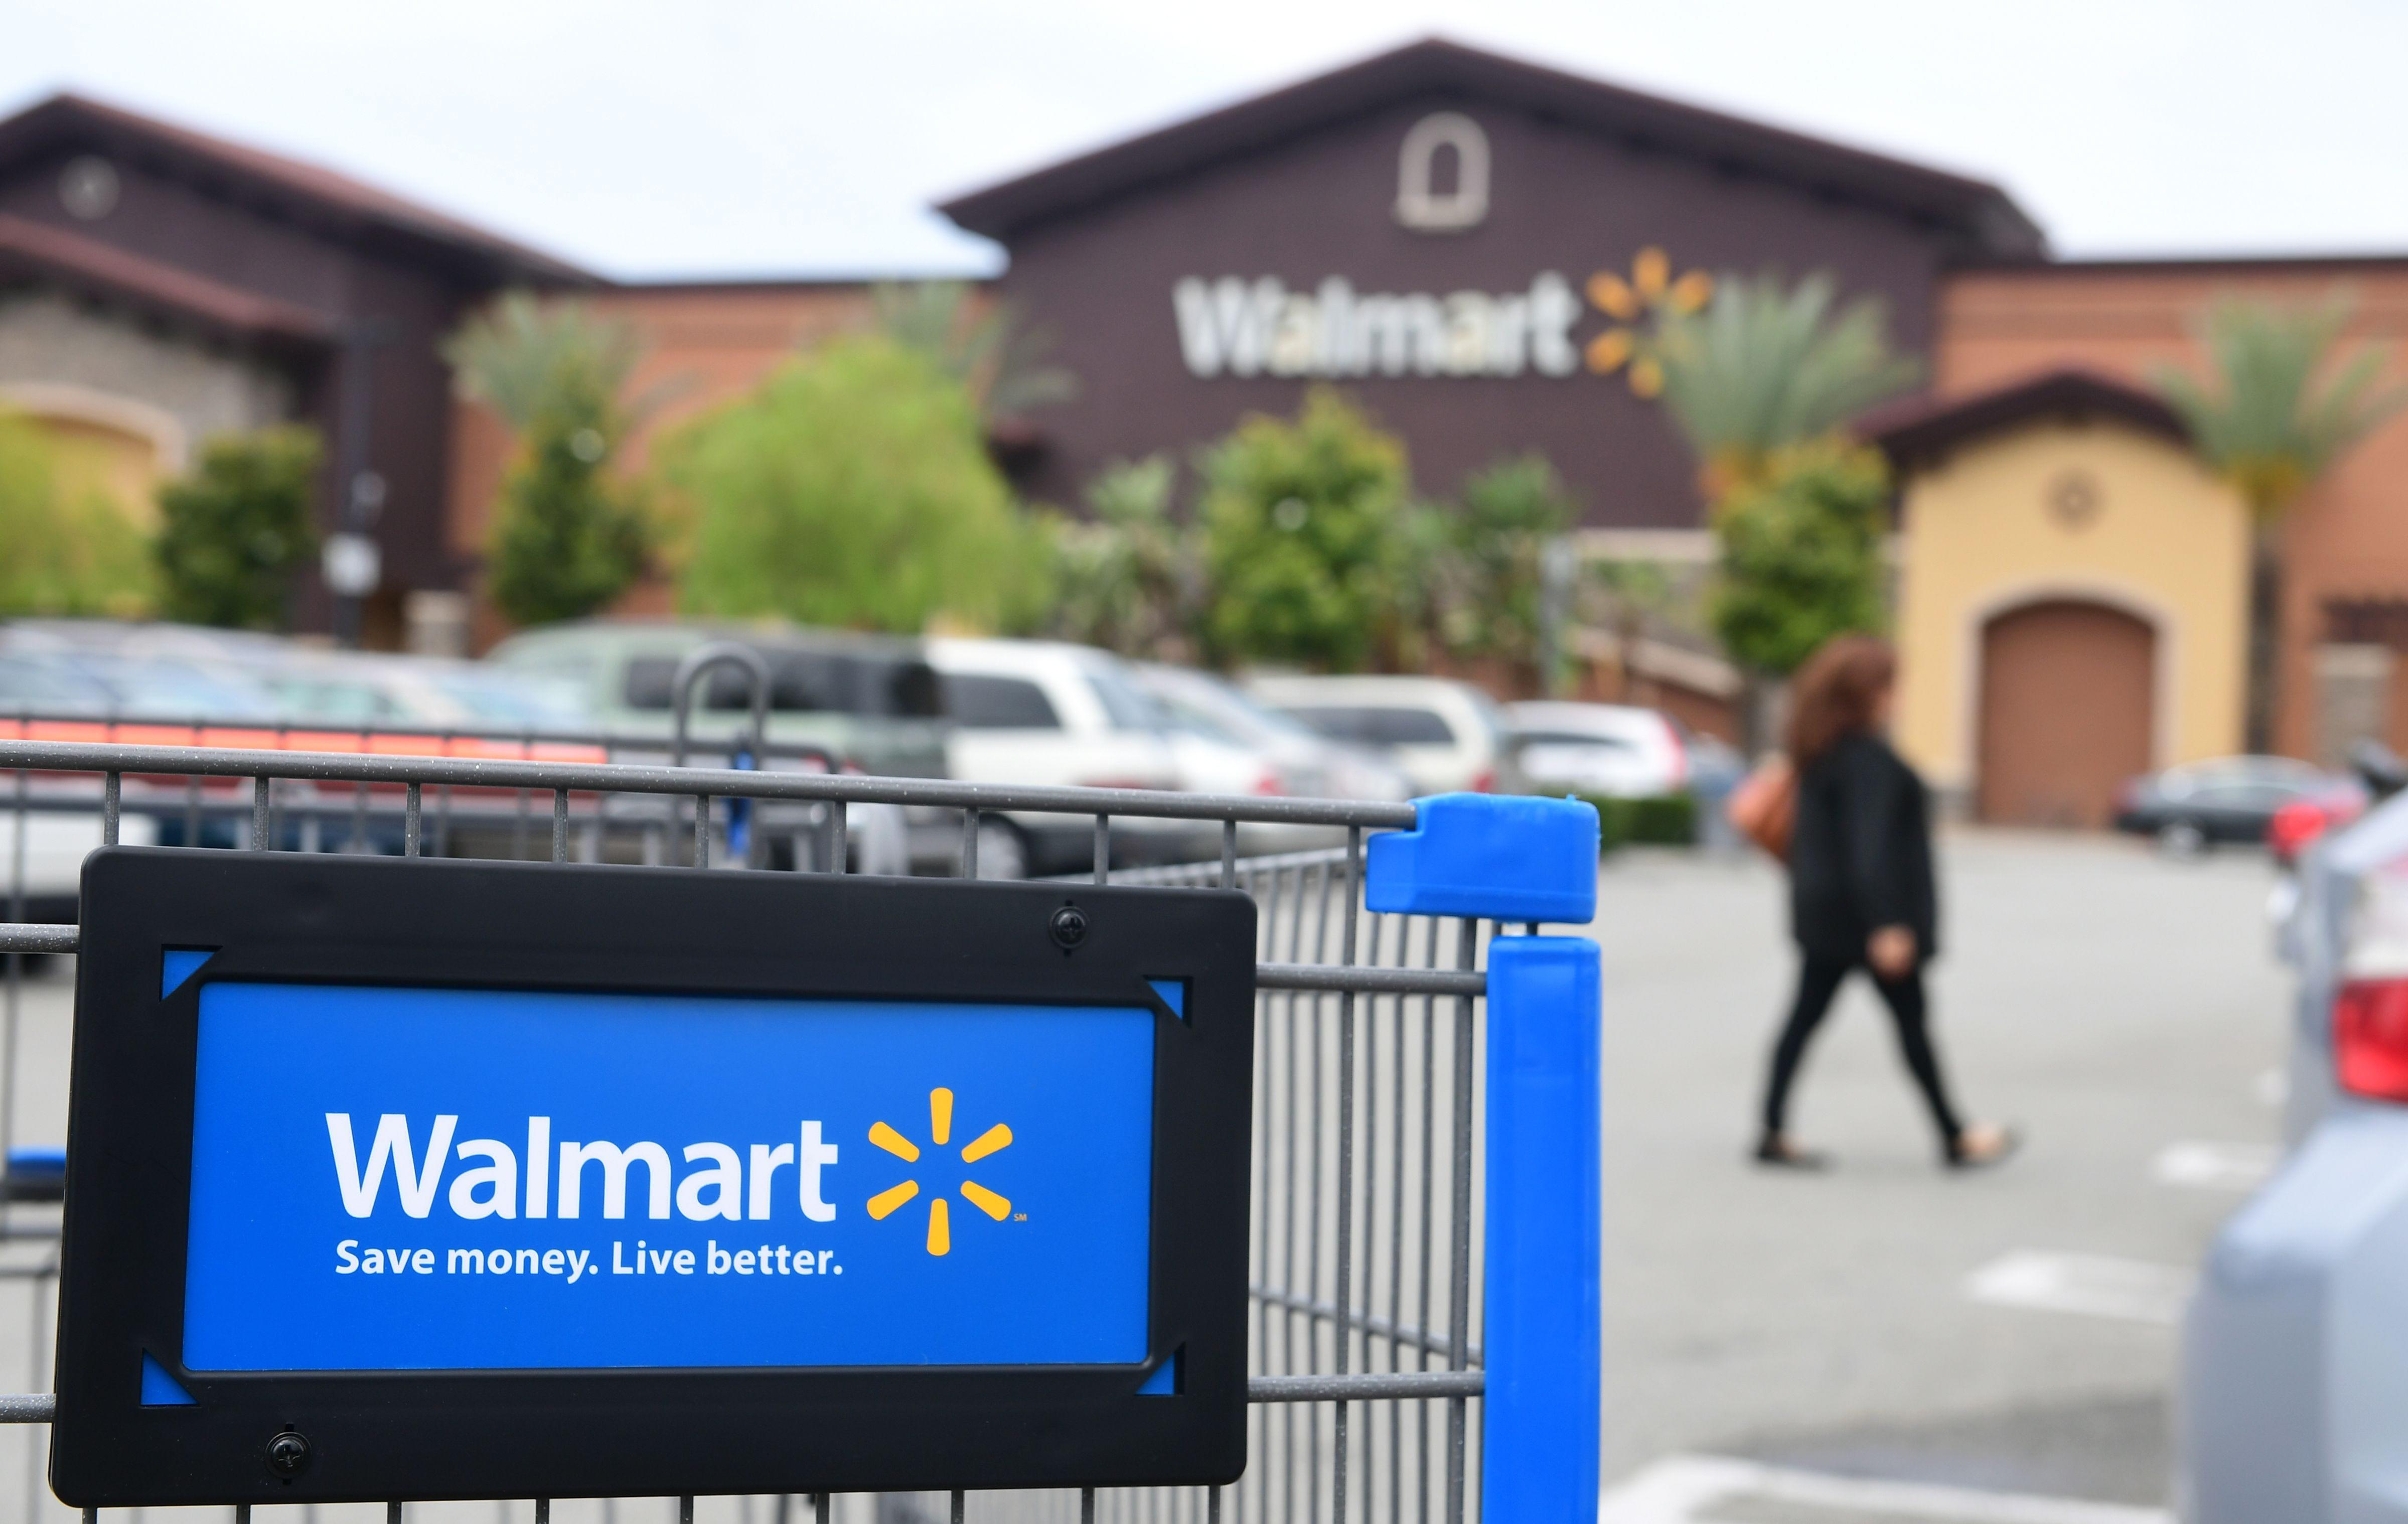 A woman peeing on produce at Walmart was caught on camera. She turned herself in